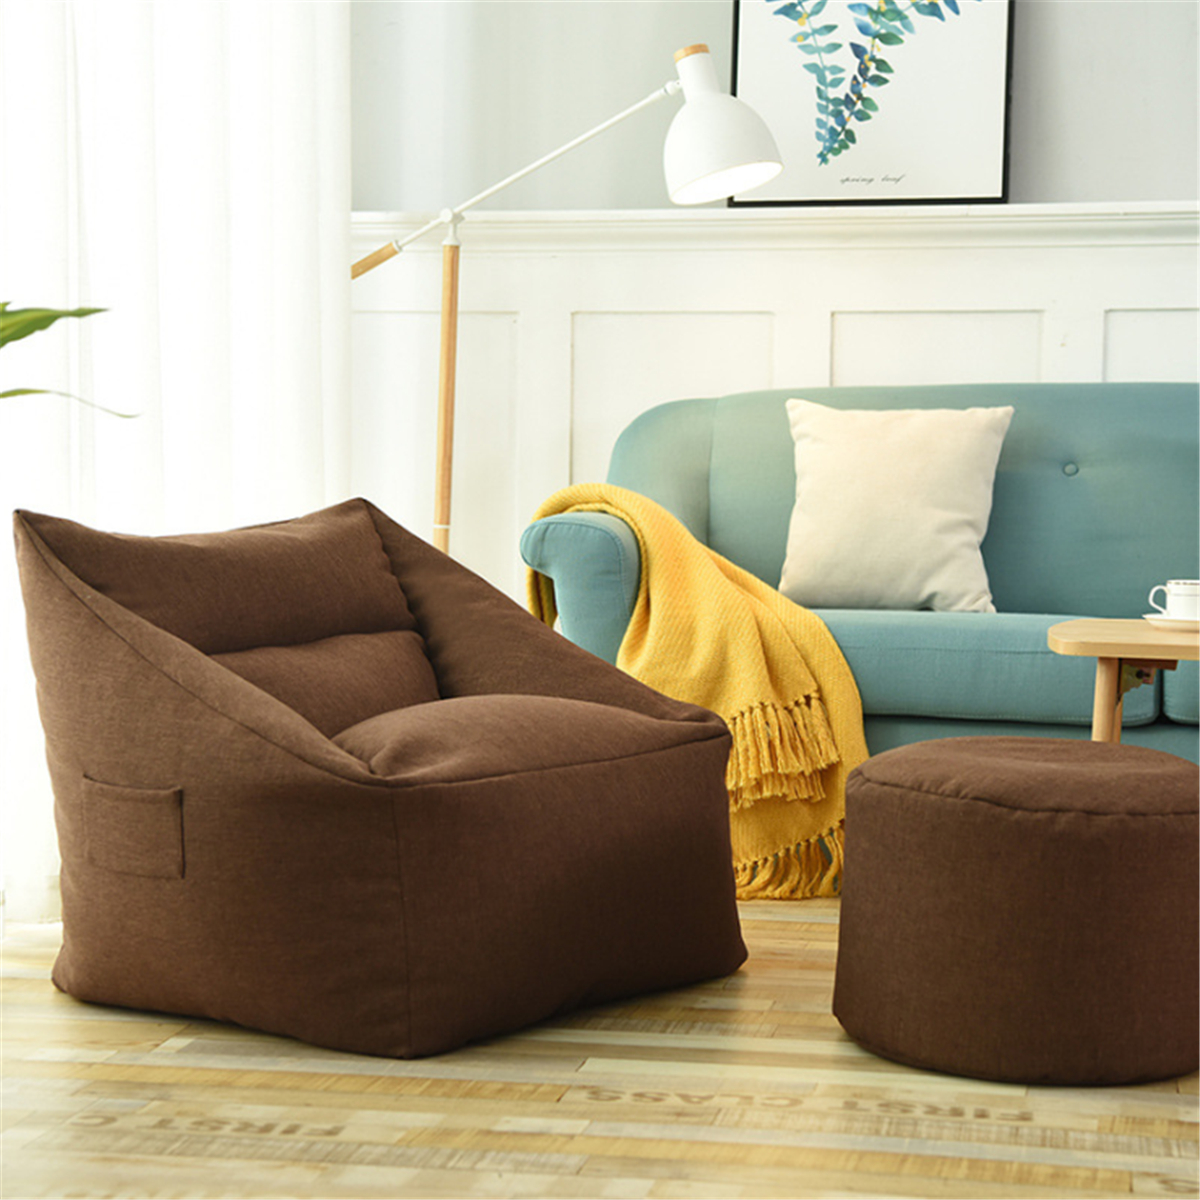 Large Bean Bag Chairs Couch Sofa Cover Indoor Lazy Lounger ...